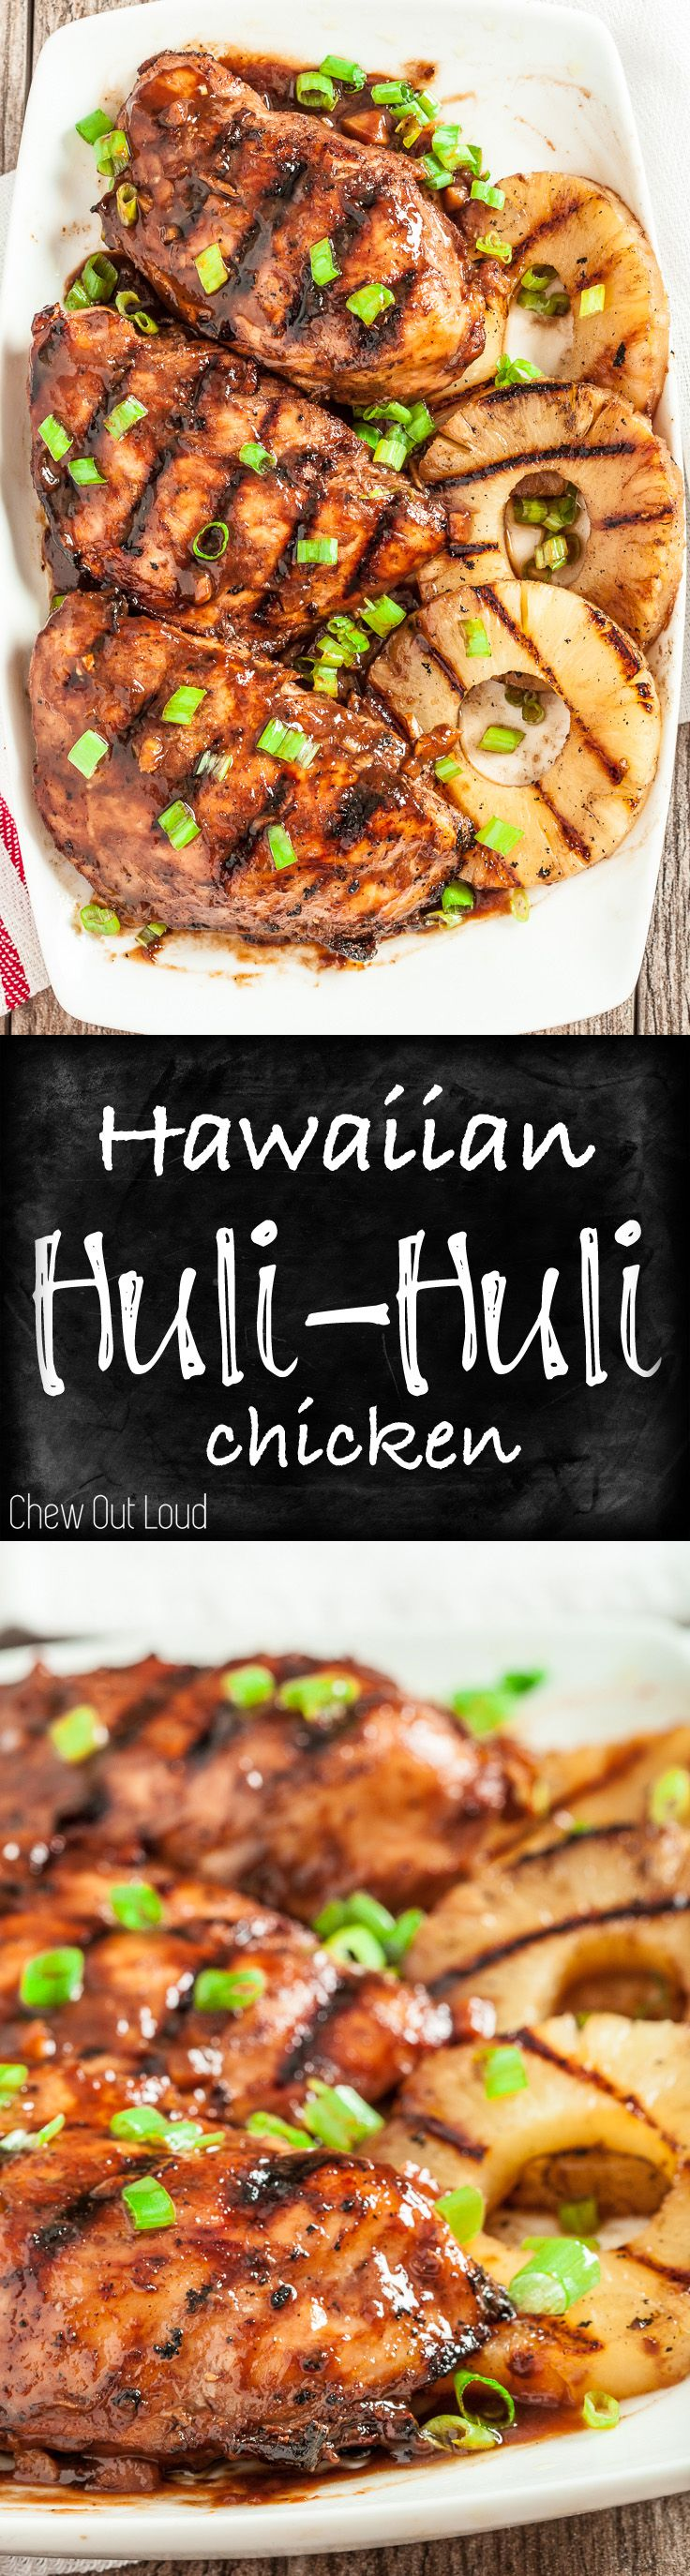 Don't let the season end without trying this Hawaiian Huli Huli Chicken! The sauce is amazing. Healthy, mouthwatering, BIG flavors for your grill. #asian #hawaiian #main